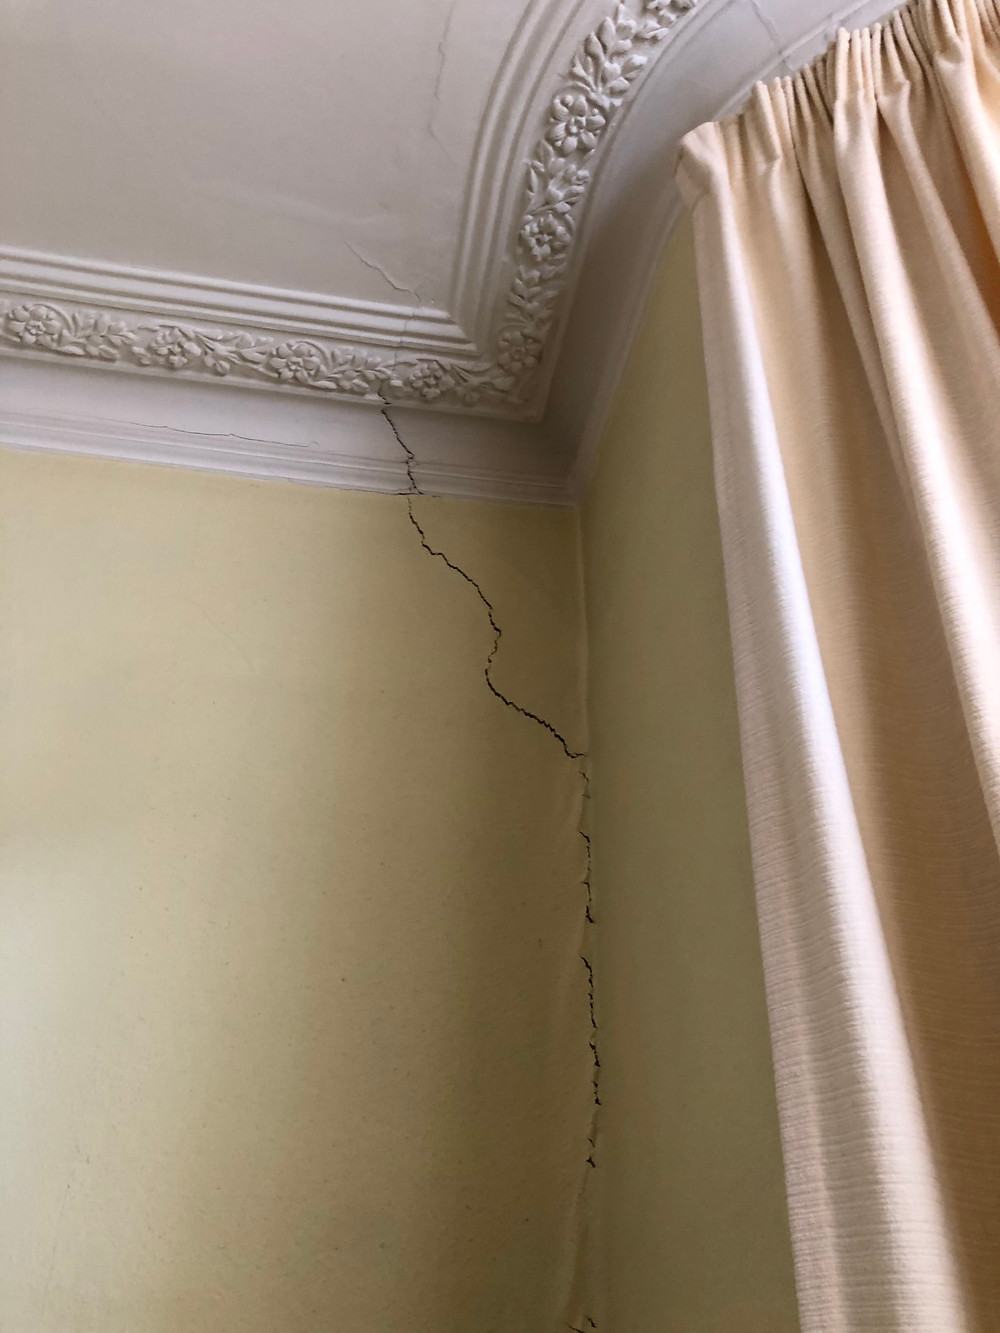 Structural Crack to Wall